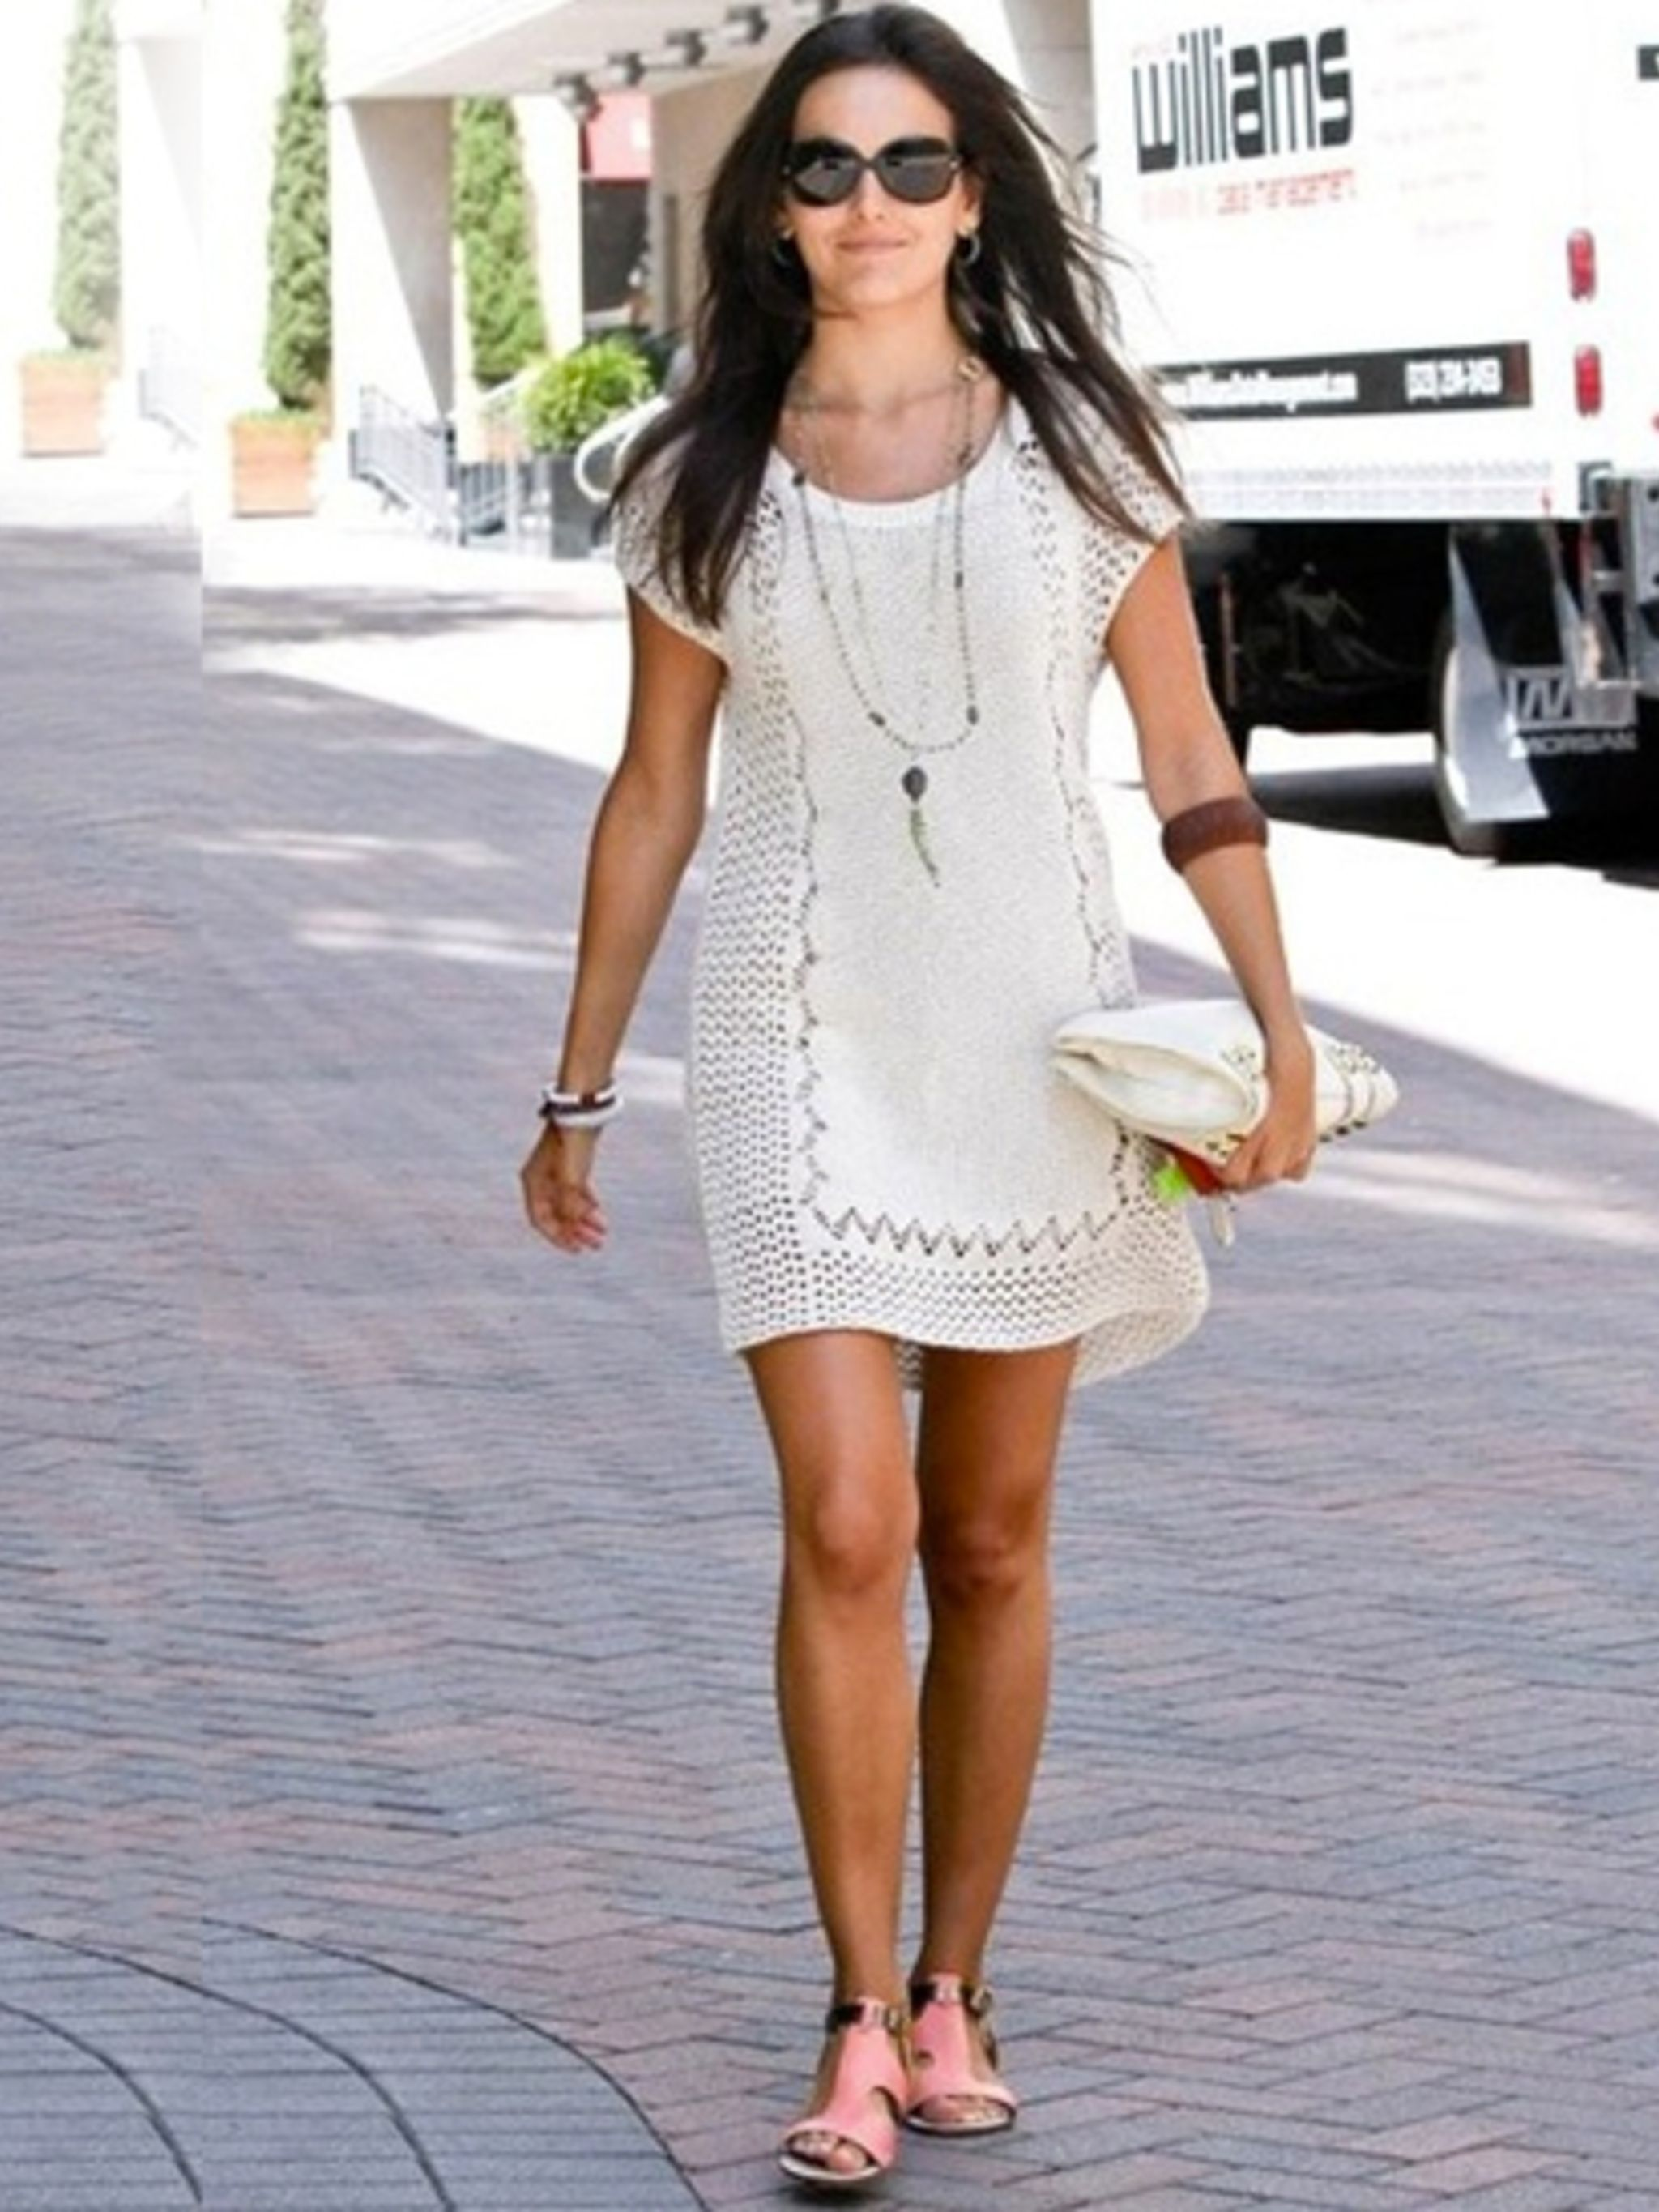 <p>Camilla Belle wearing Rebecca Minkoff Bardot sandals, August 2012.</p>